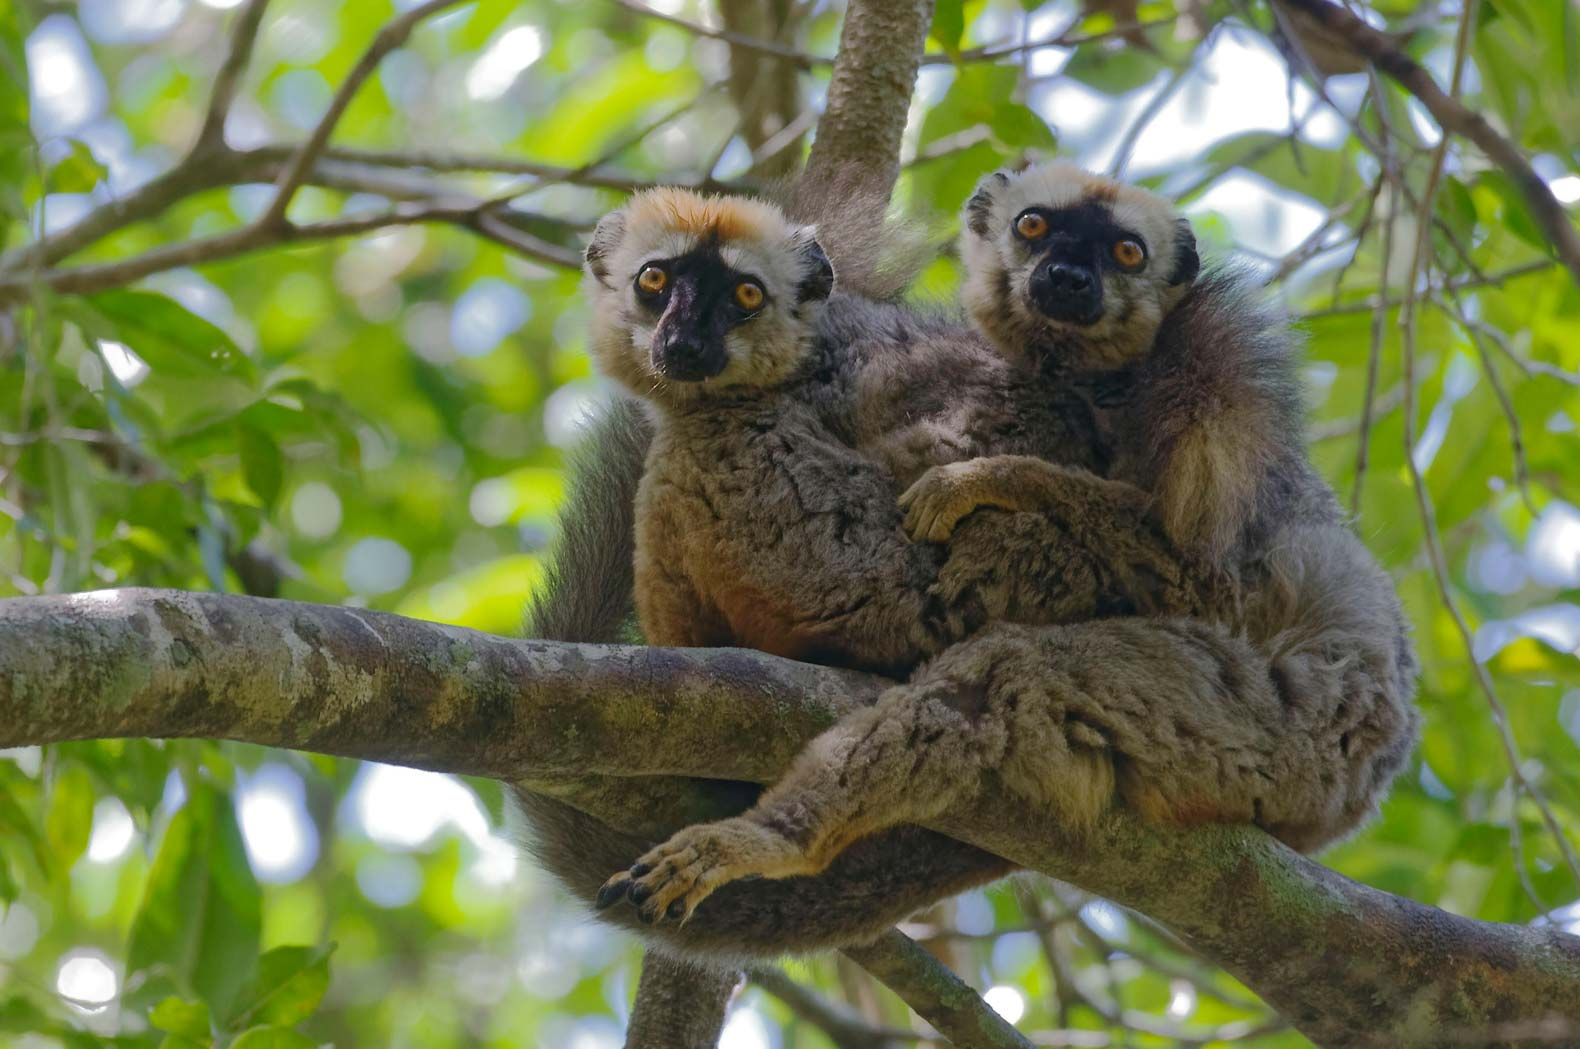 Lemurs are now the most endangered species of primate on the planet